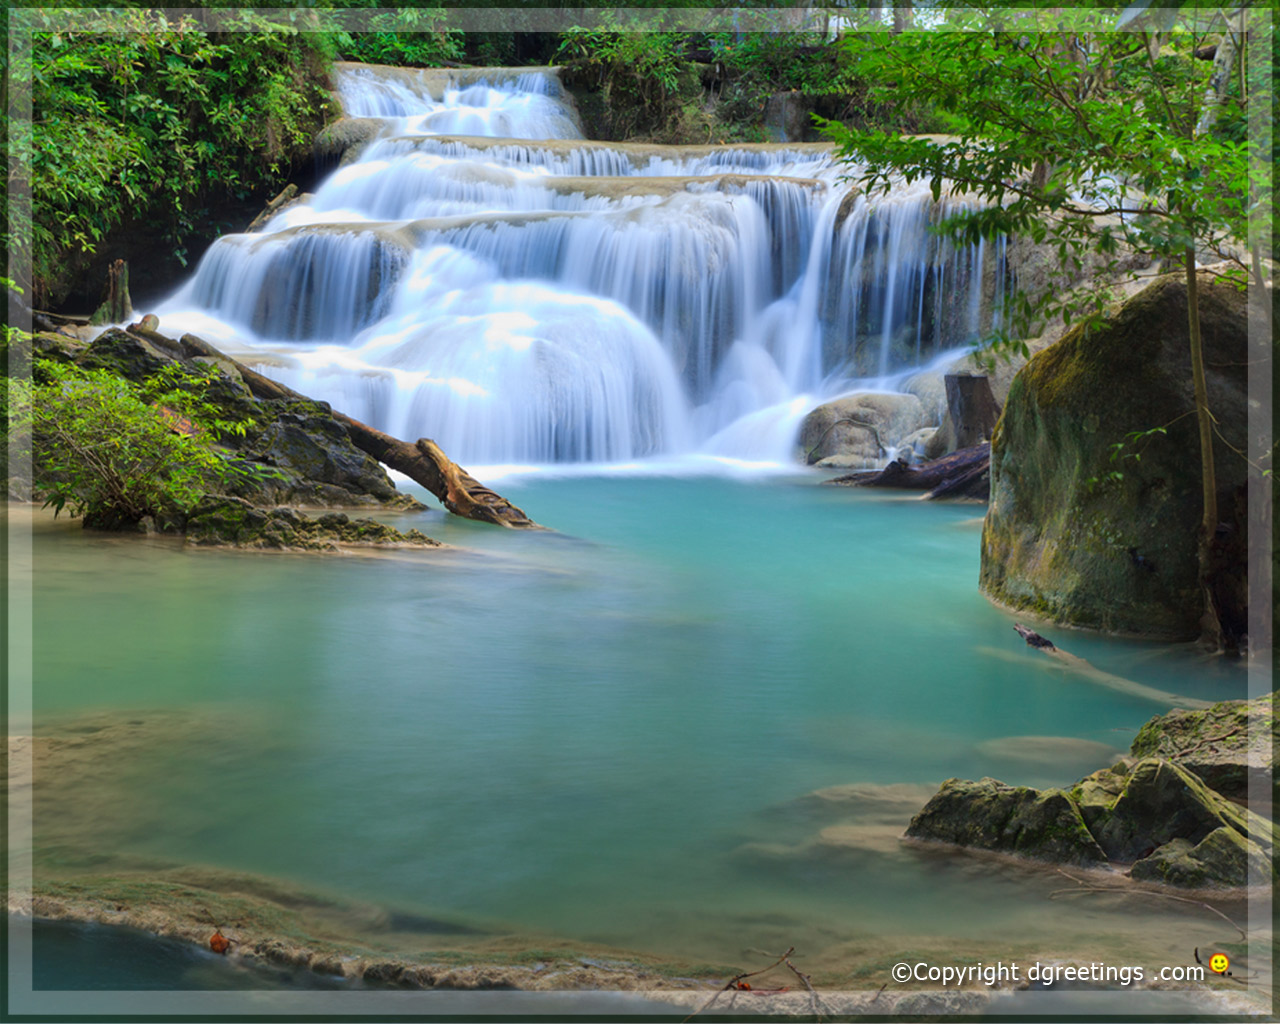 Waterfall Wallpapers Waterfall Wallpapers Animated Waterfall 1280x1024